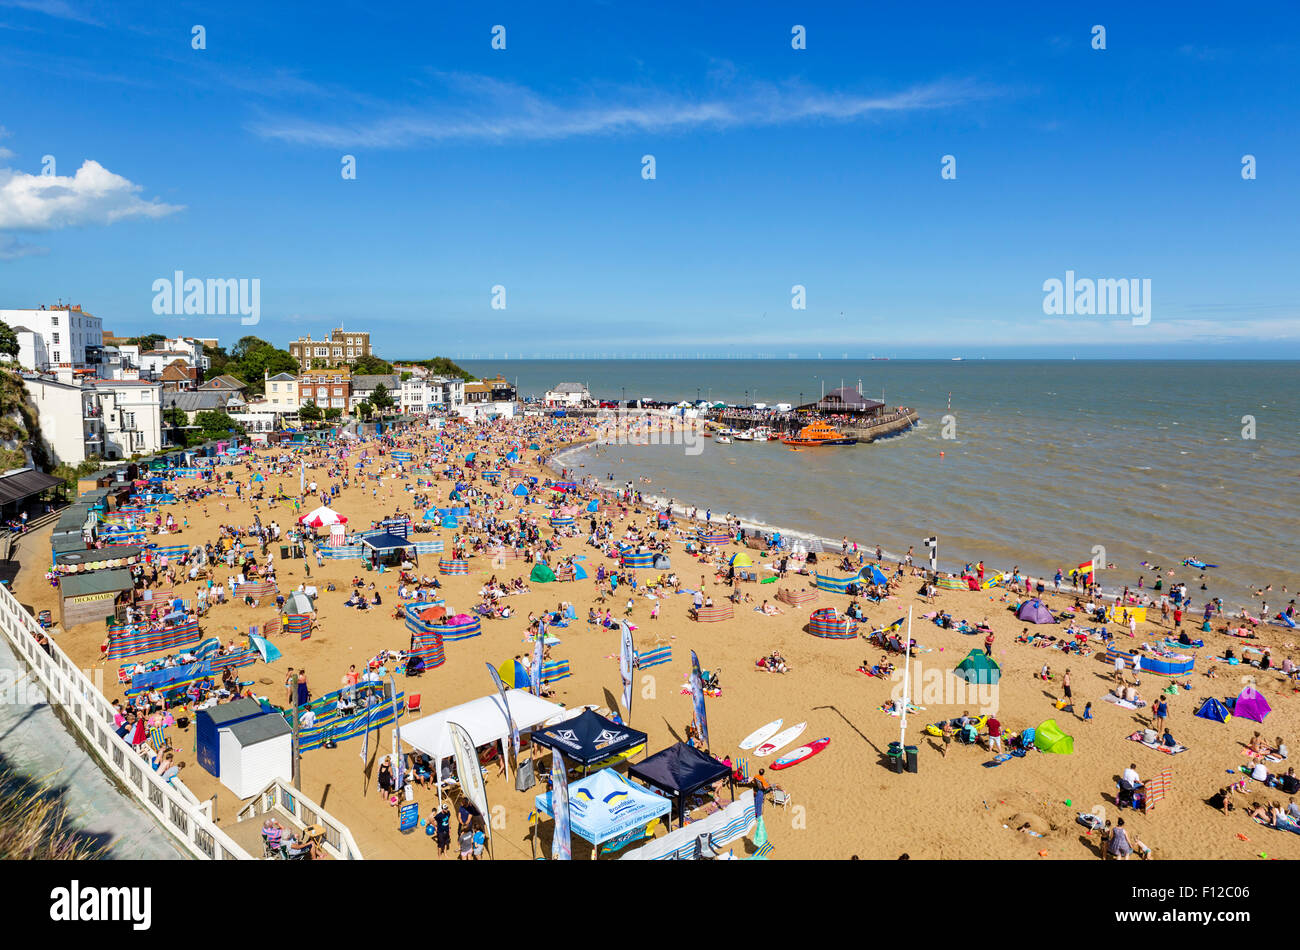 The beach in Broadstairs, Kent, England, UK - Stock Image